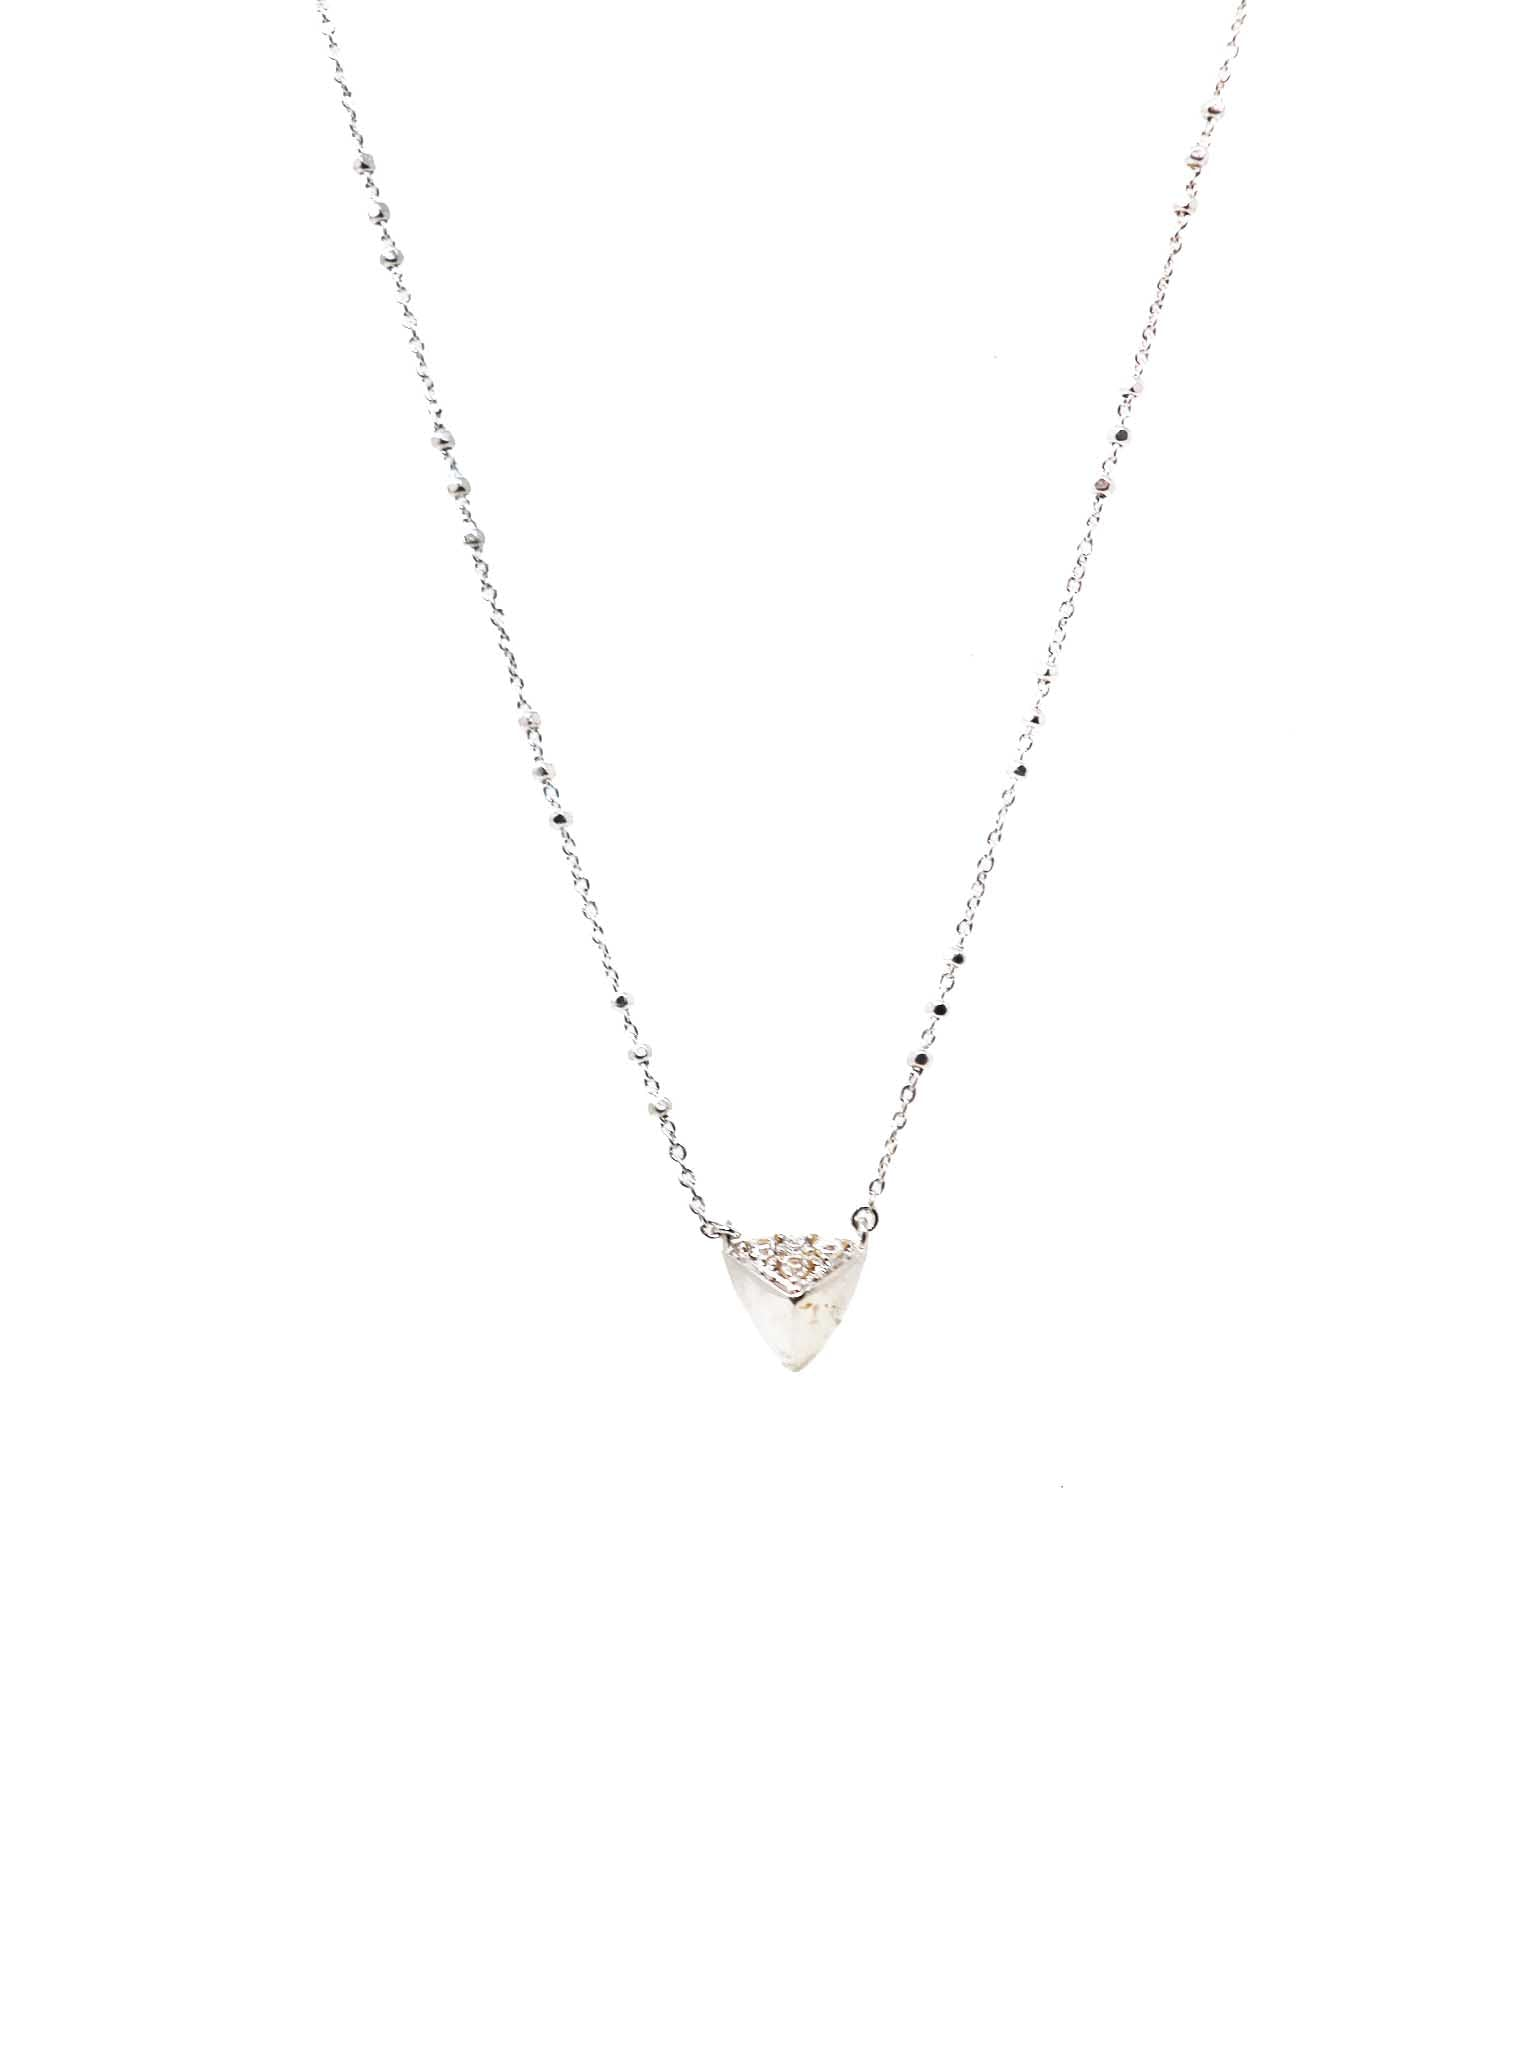 Kendra Scott Perry Short Pendant Necklace Rhodium - Gabrielle's Biloxi